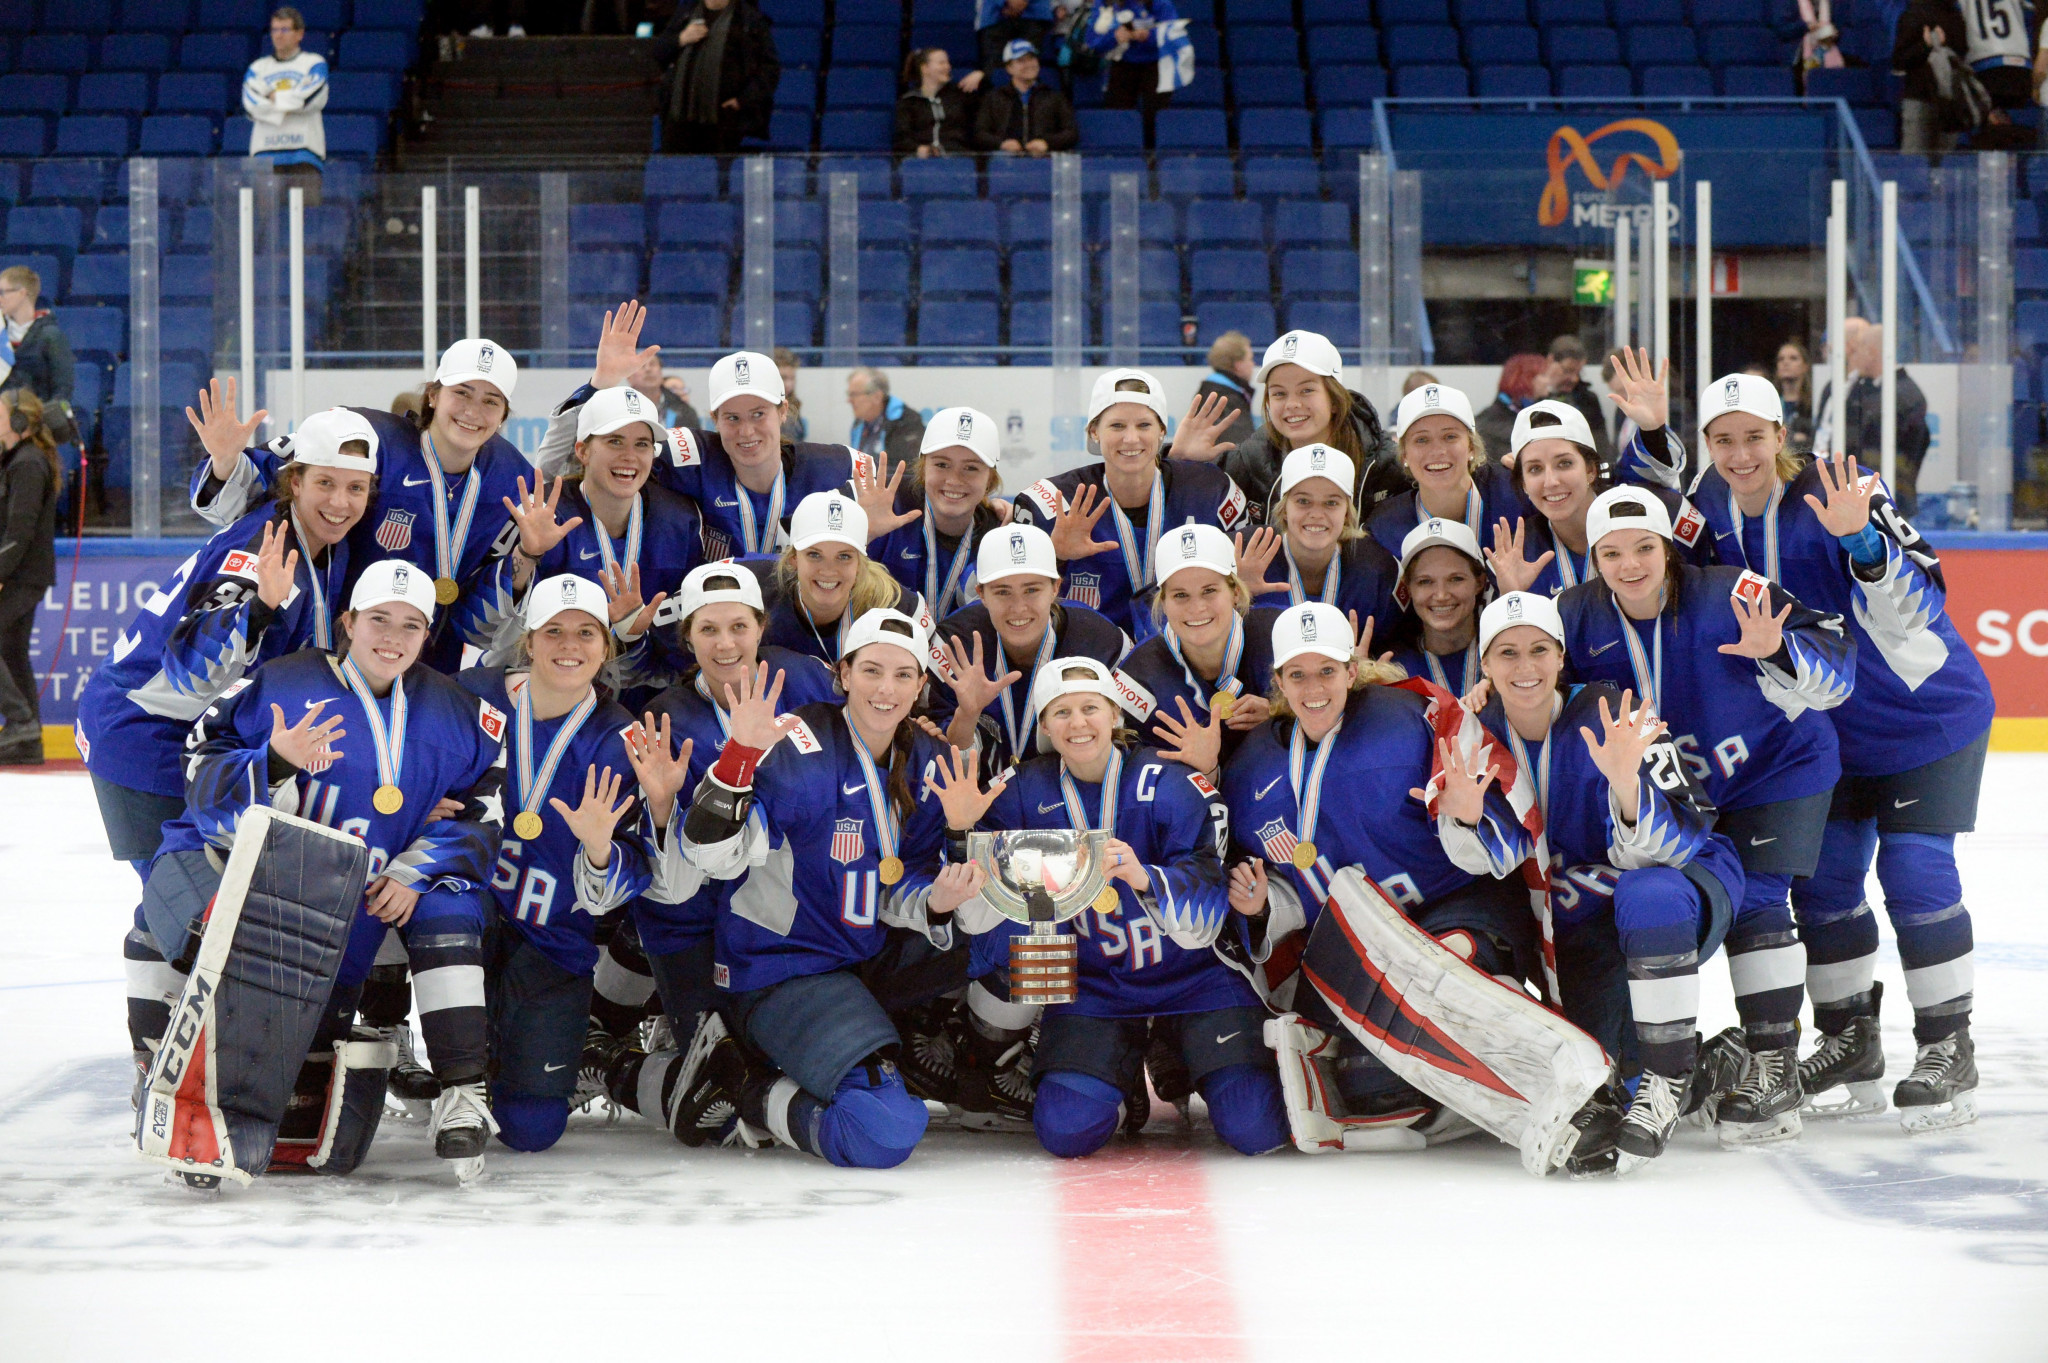 The United States will be hoping to defend their title when the Women's World Championship is held in August ©Getty Images